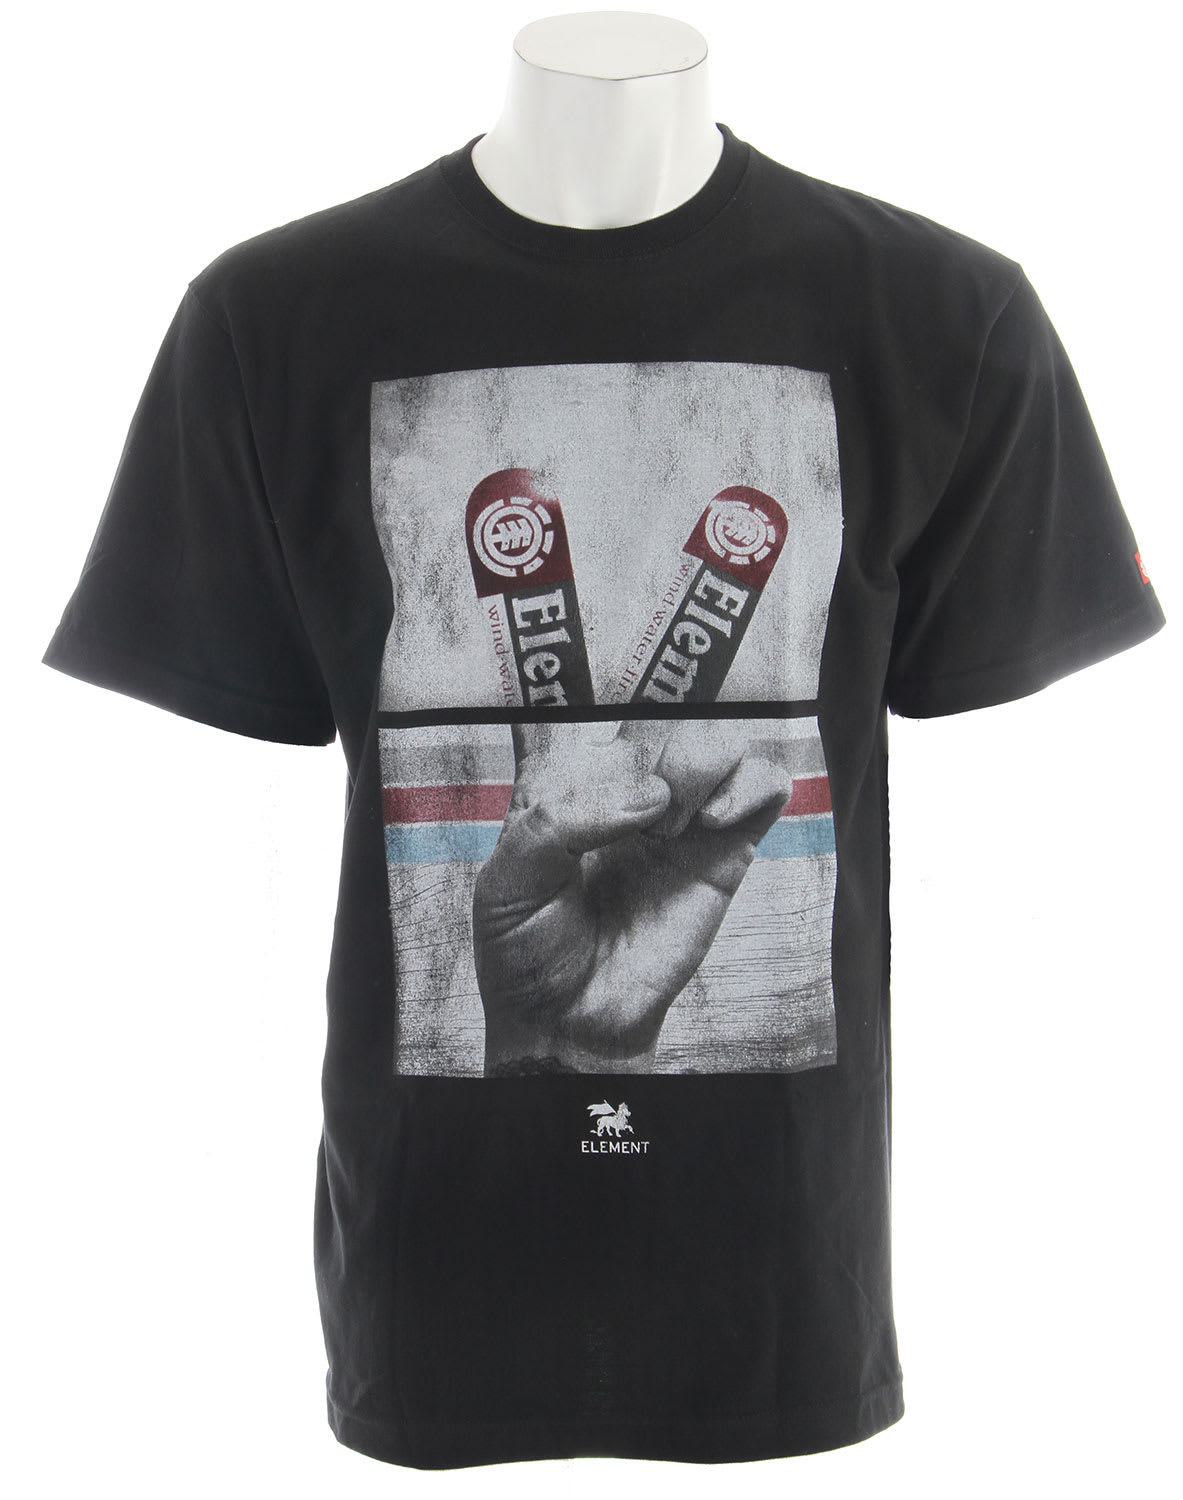 Shop for Element Fingers T-Shirt Black - Men's